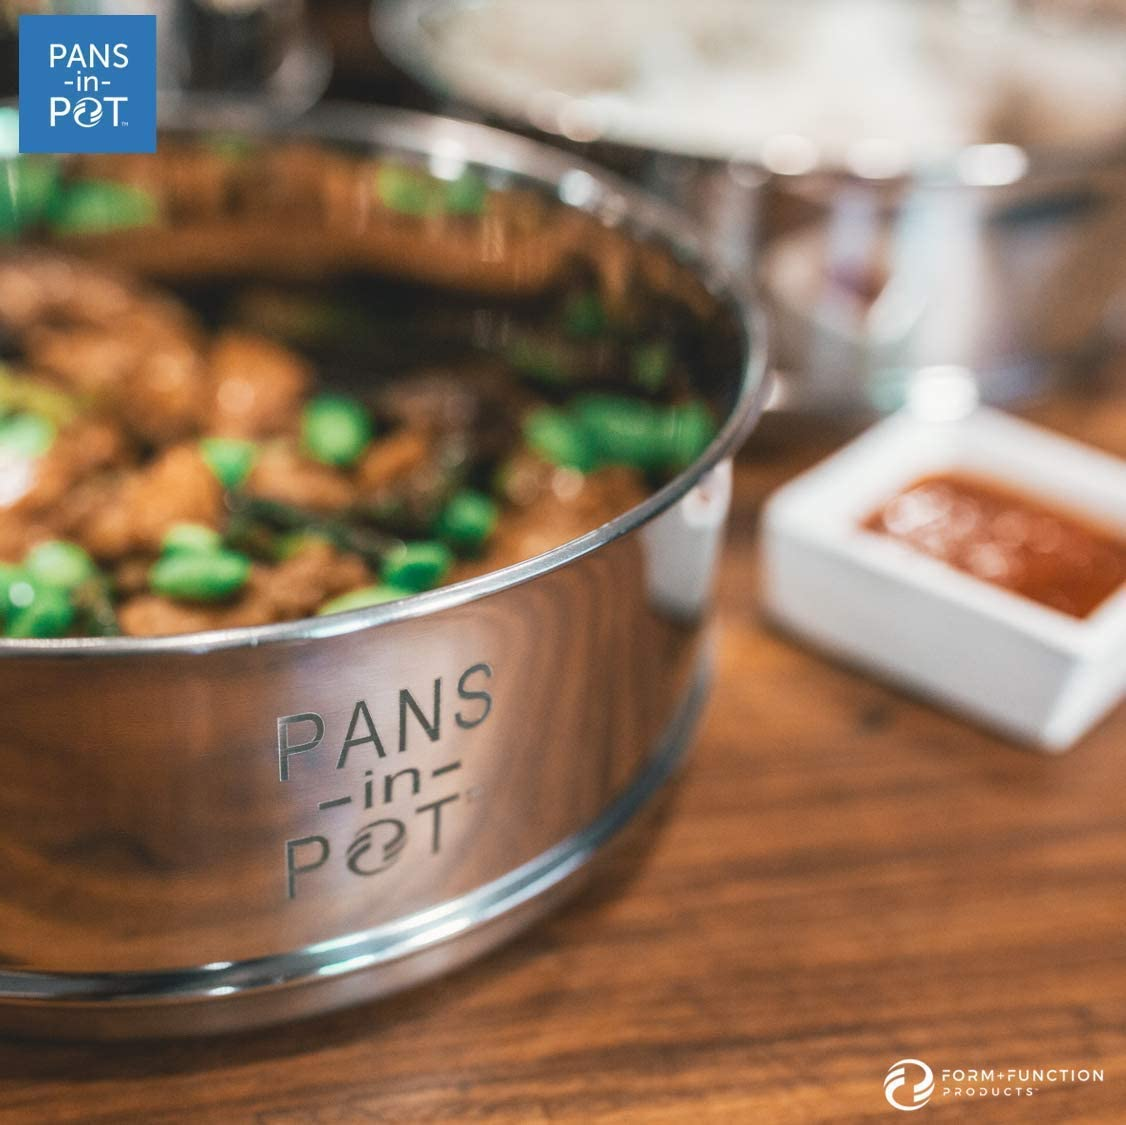 8QT Stainless Steel Stackable Steamer Insert Pans with MAX FILL LINE Indicators for Instant Pot 8 QT